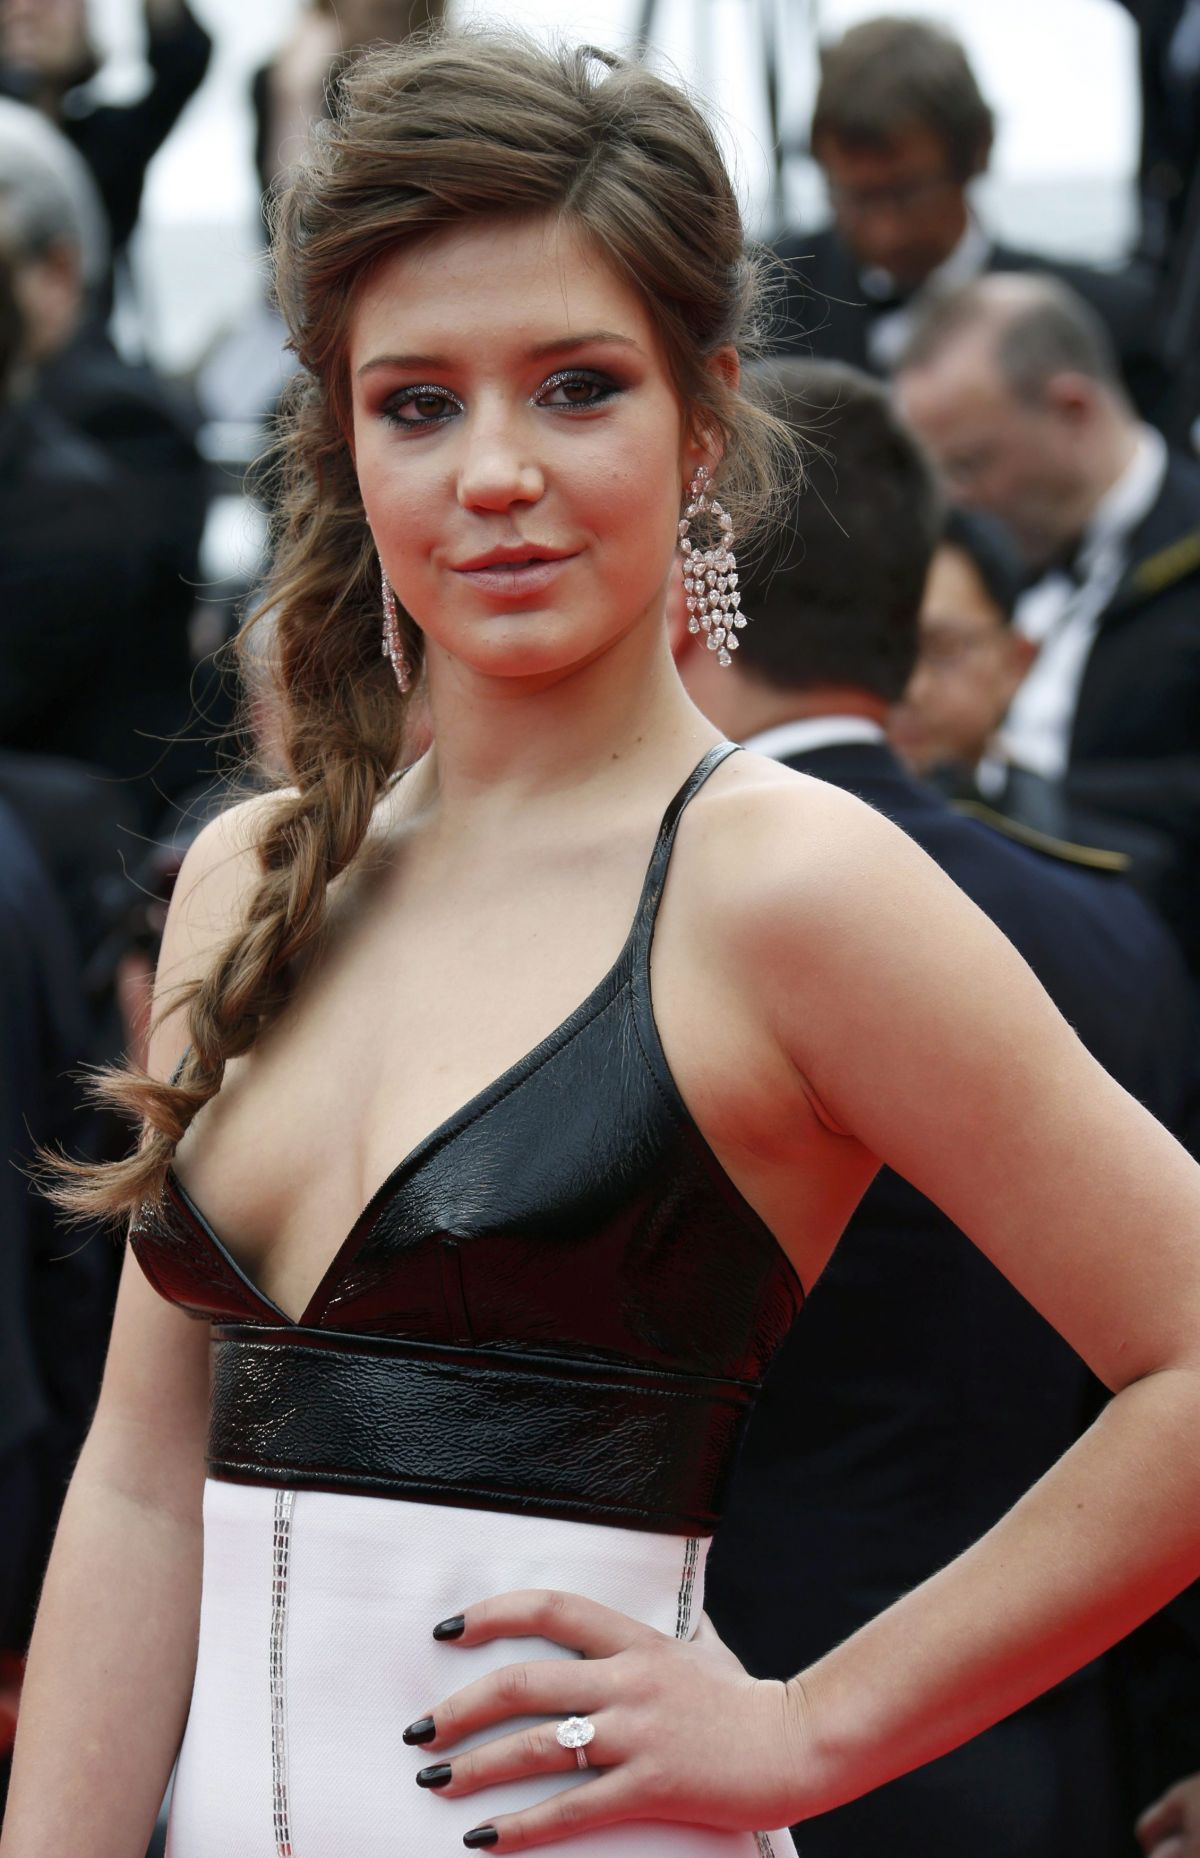 ADELE EXARCHOPOULOS at Cannes Film Festival 2014